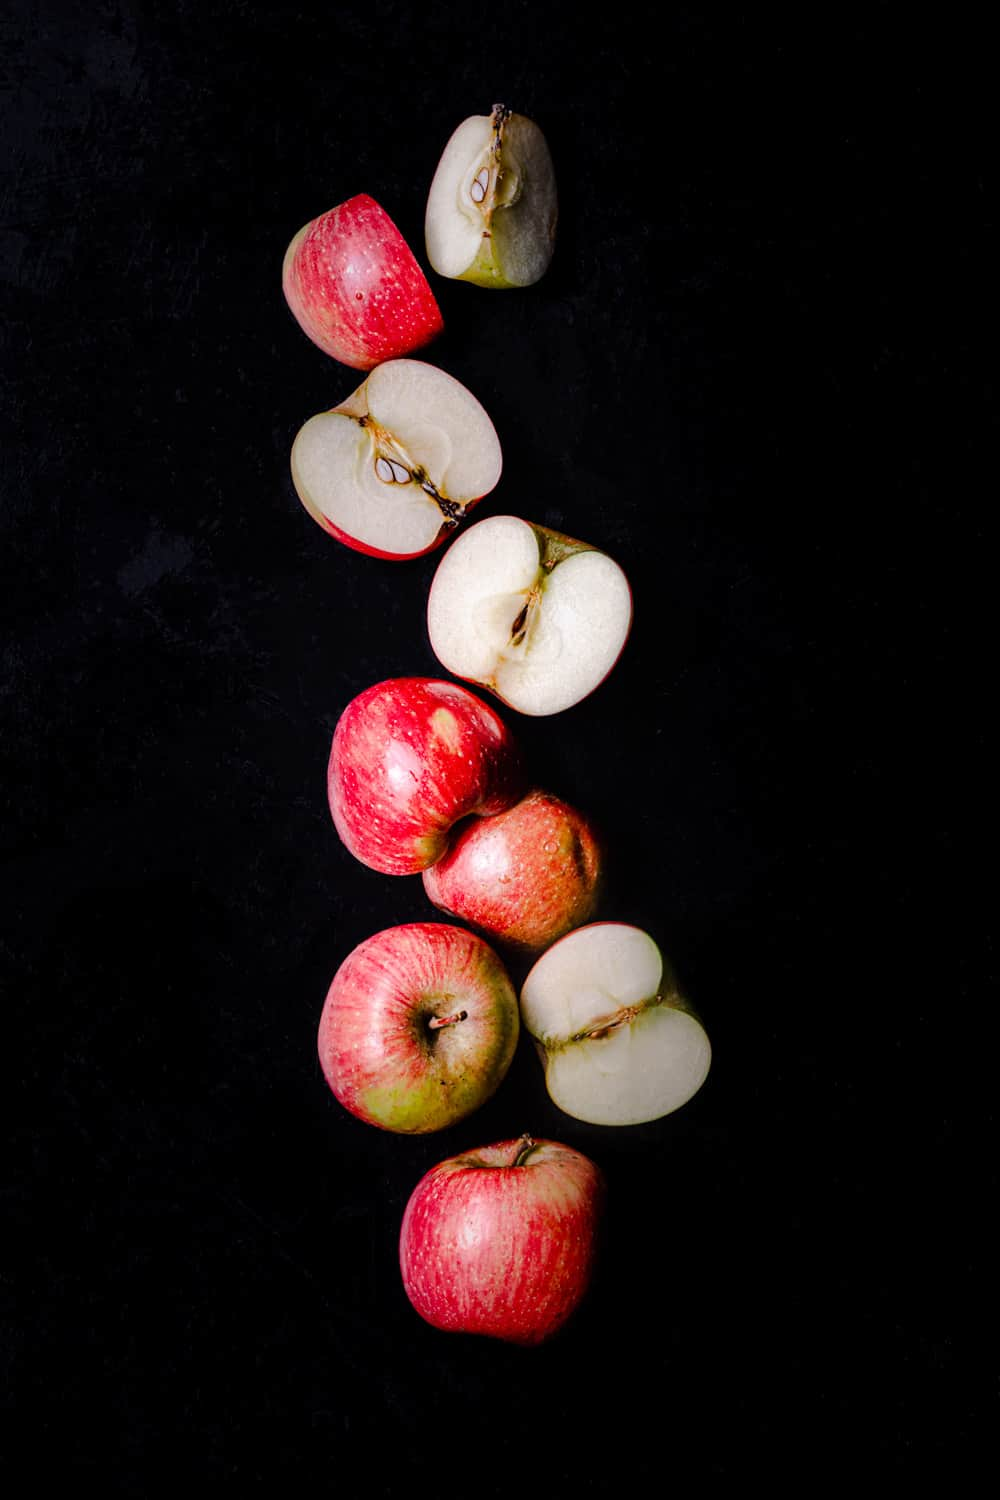 Little red apples, whole, cut in half and quartered, on a black background; ; overhead shot.